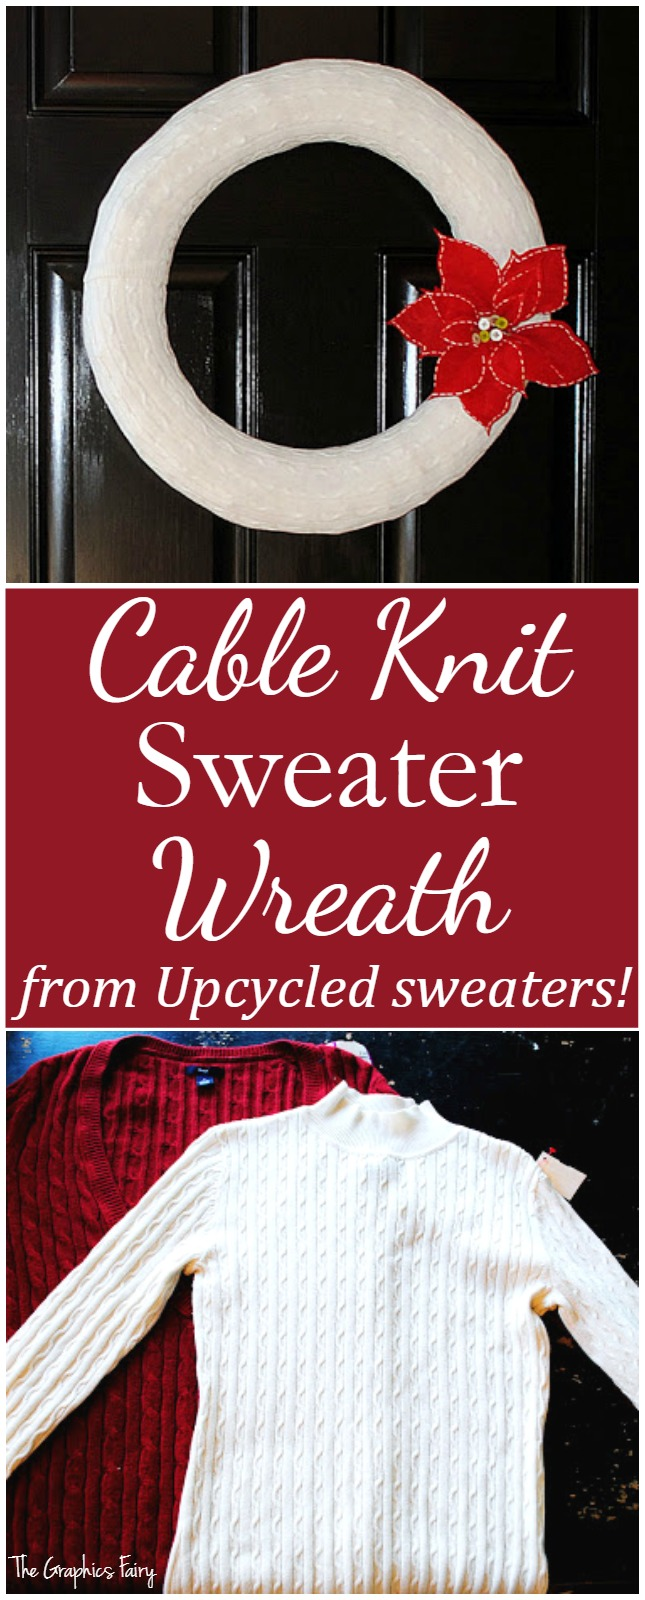 Cable Knit Sweater Wreath from Upcycled Sweaters - The Graphics Fairy